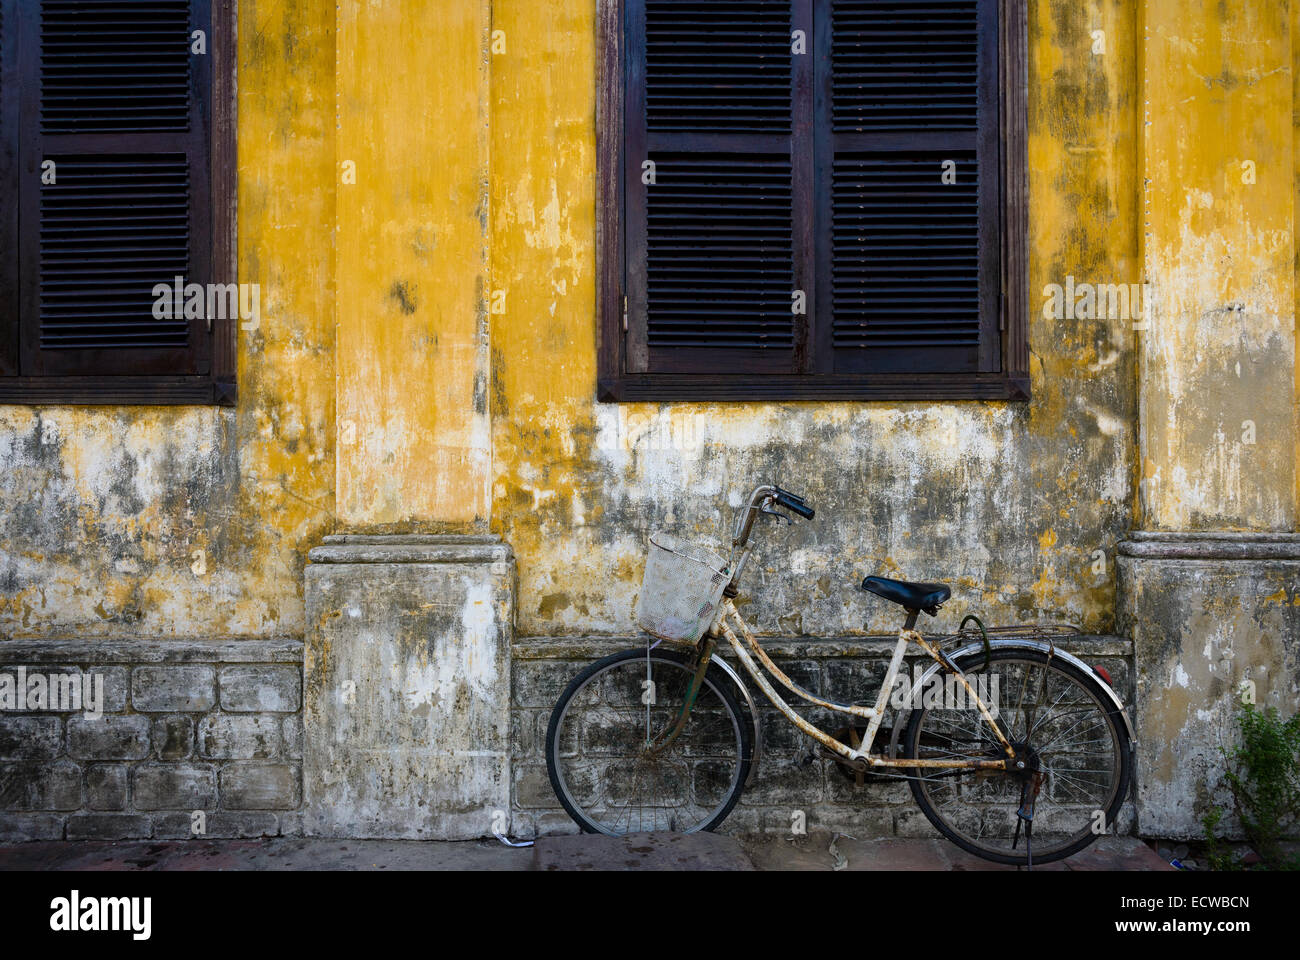 Worn bicycle leant against a delapidated wall in Hoi An Ancient Town - Stock Image